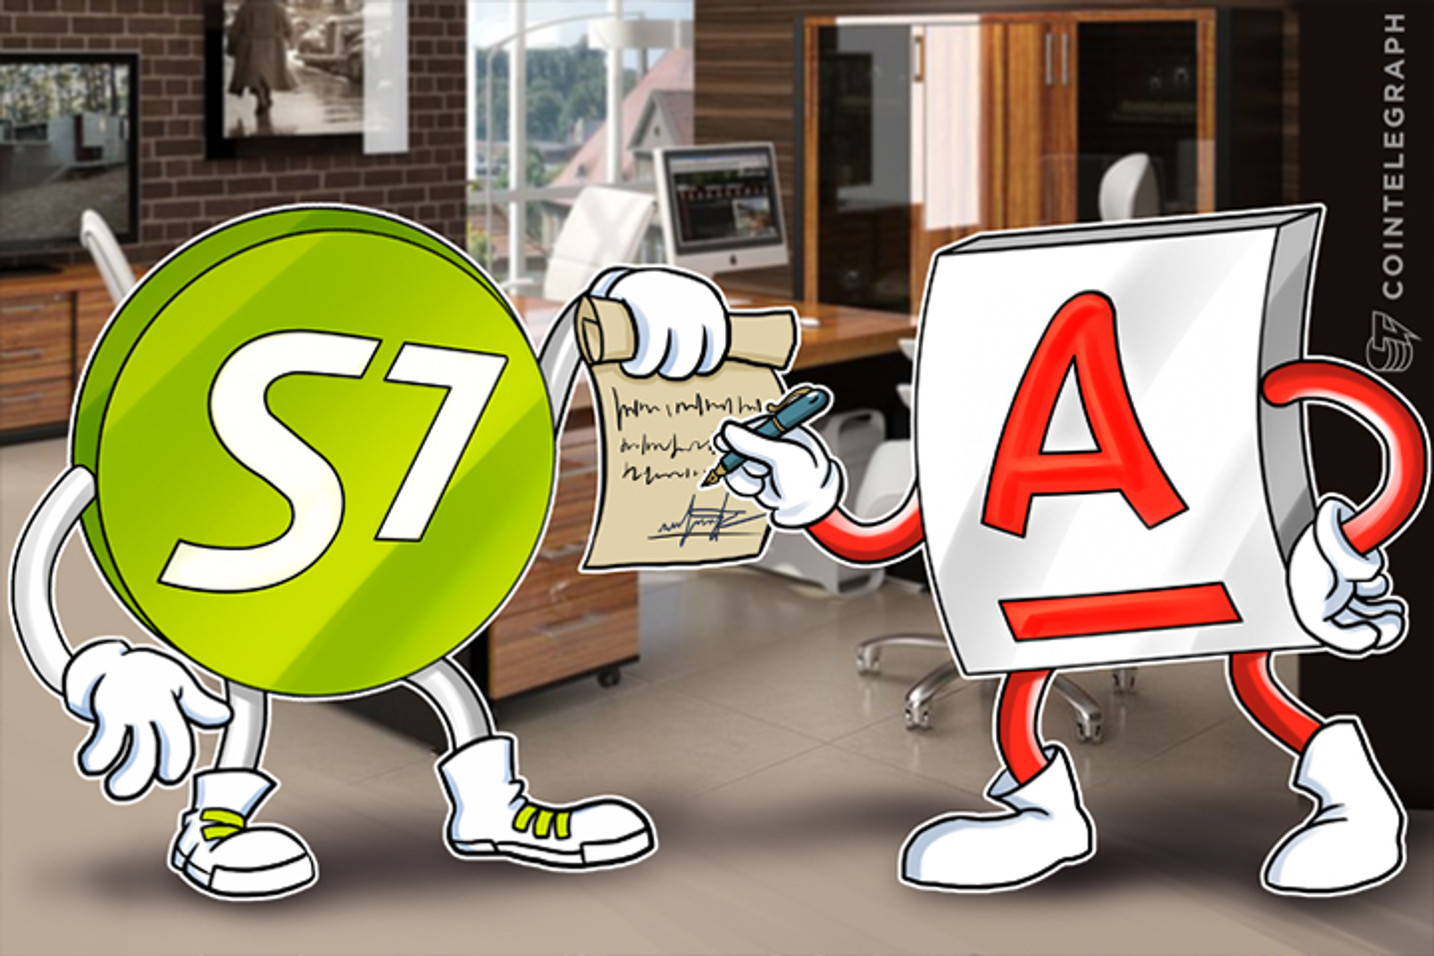 S7 Airlines and Alfa Bank Test Blockchain for B2B Payment in Russia